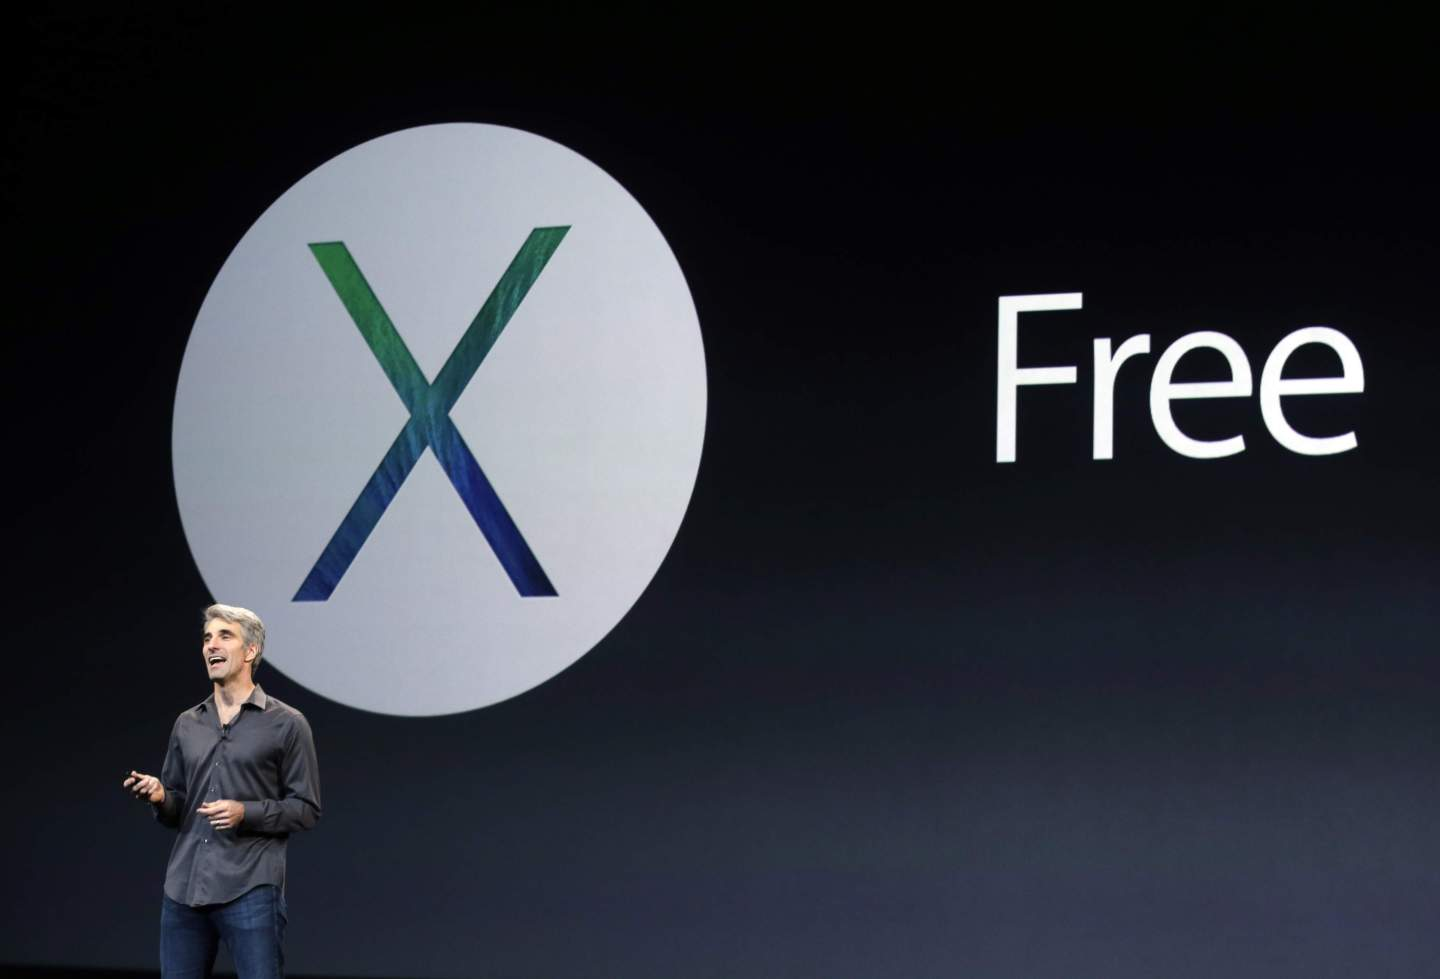 OSX Mavericks free